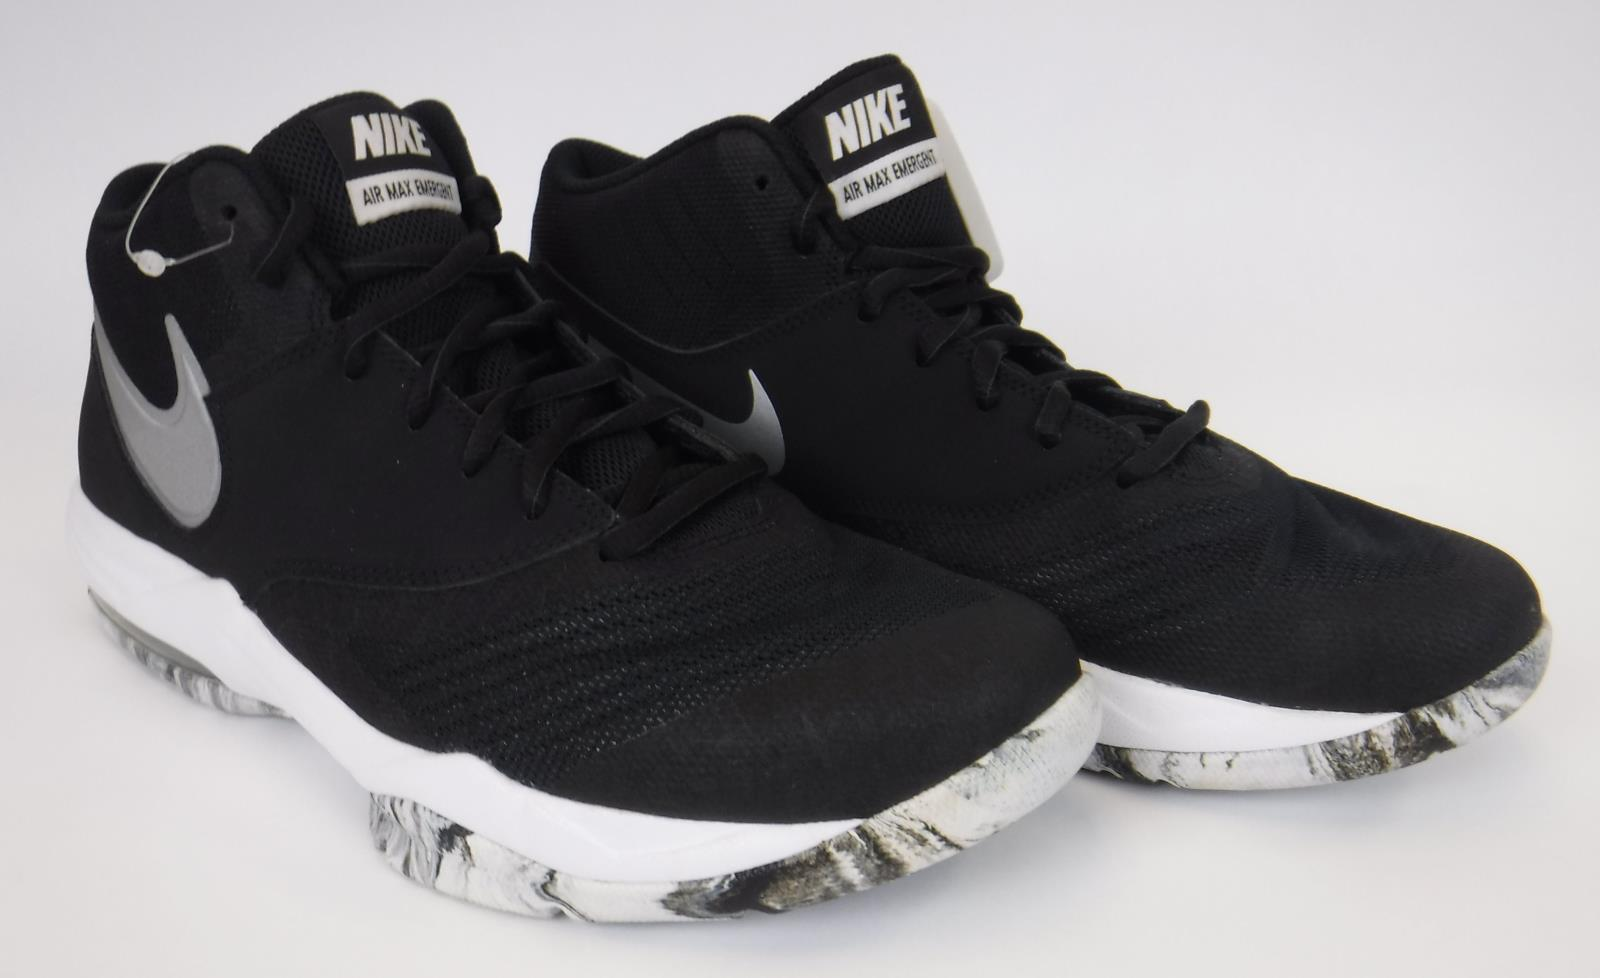 5e498687b8526 Details about New Nike Men s Air Max Emergent US Size 9 Black   Silver    White 818954-001